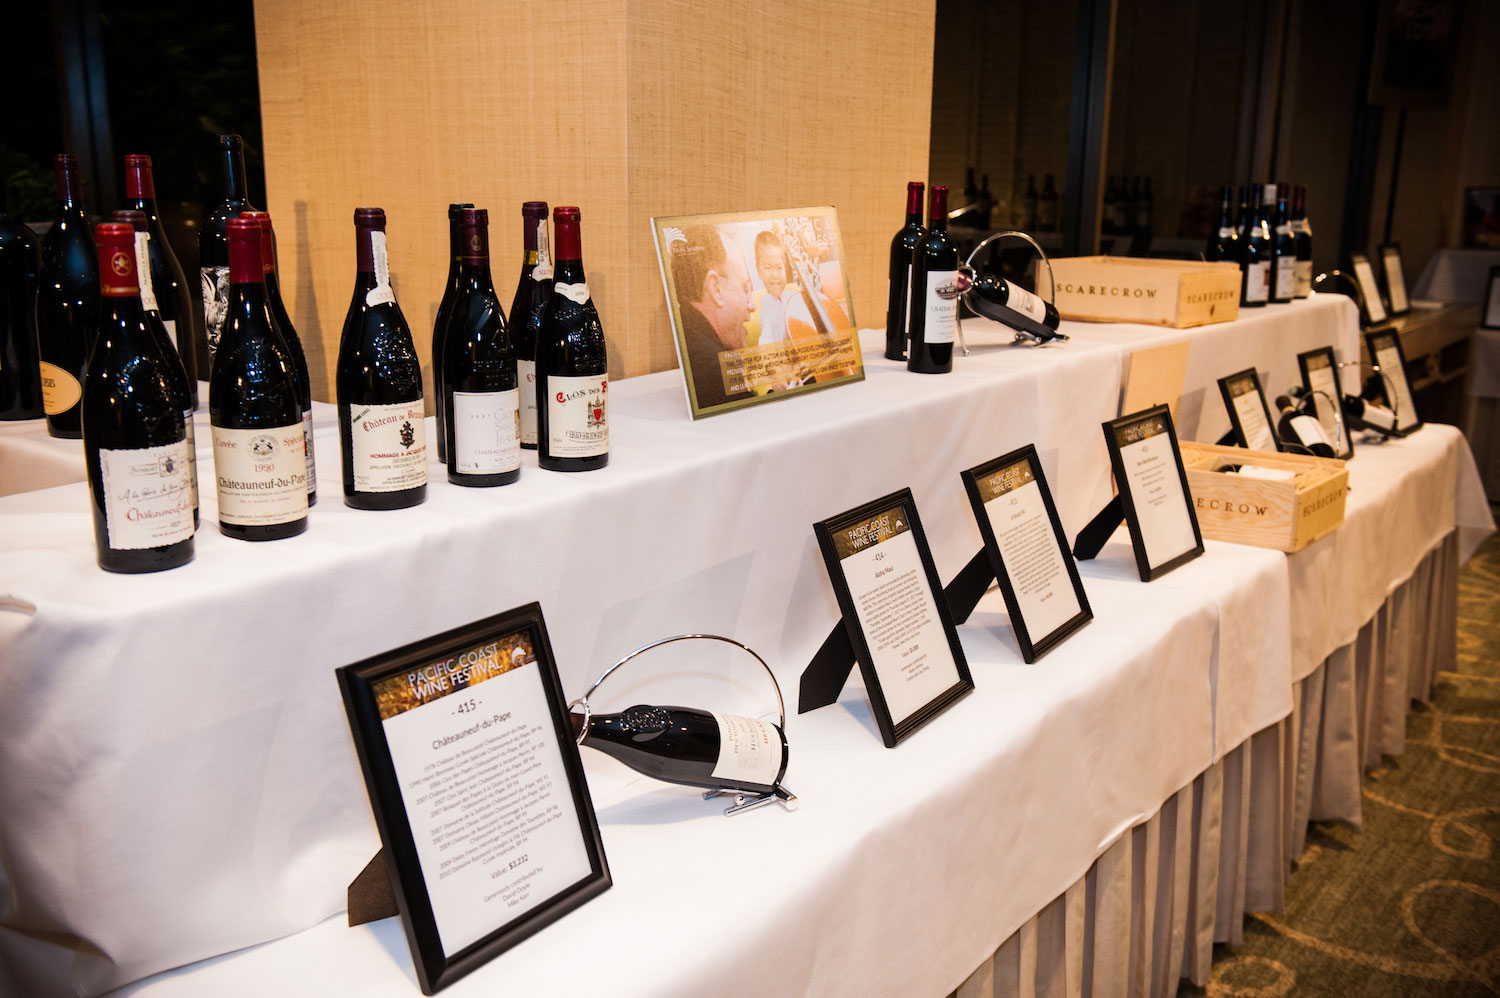 Wines up for bid